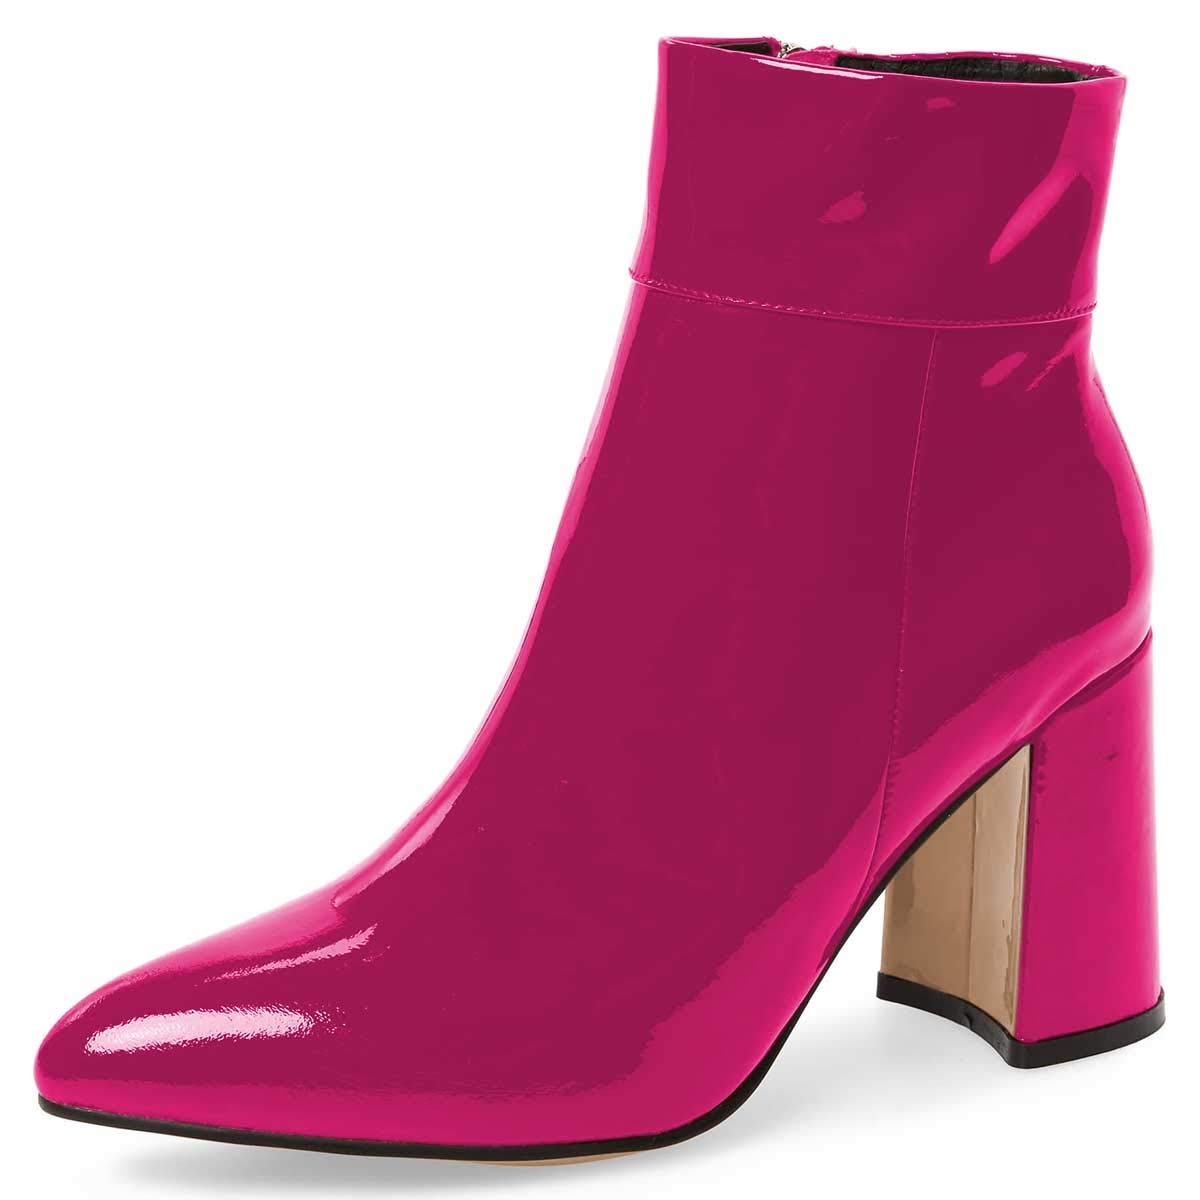 Fuchsia FSJ Women Pointed Toe Block High Heels Ankle Boots Glossy Patent Leather Party Dress Booties Size 4-15 US